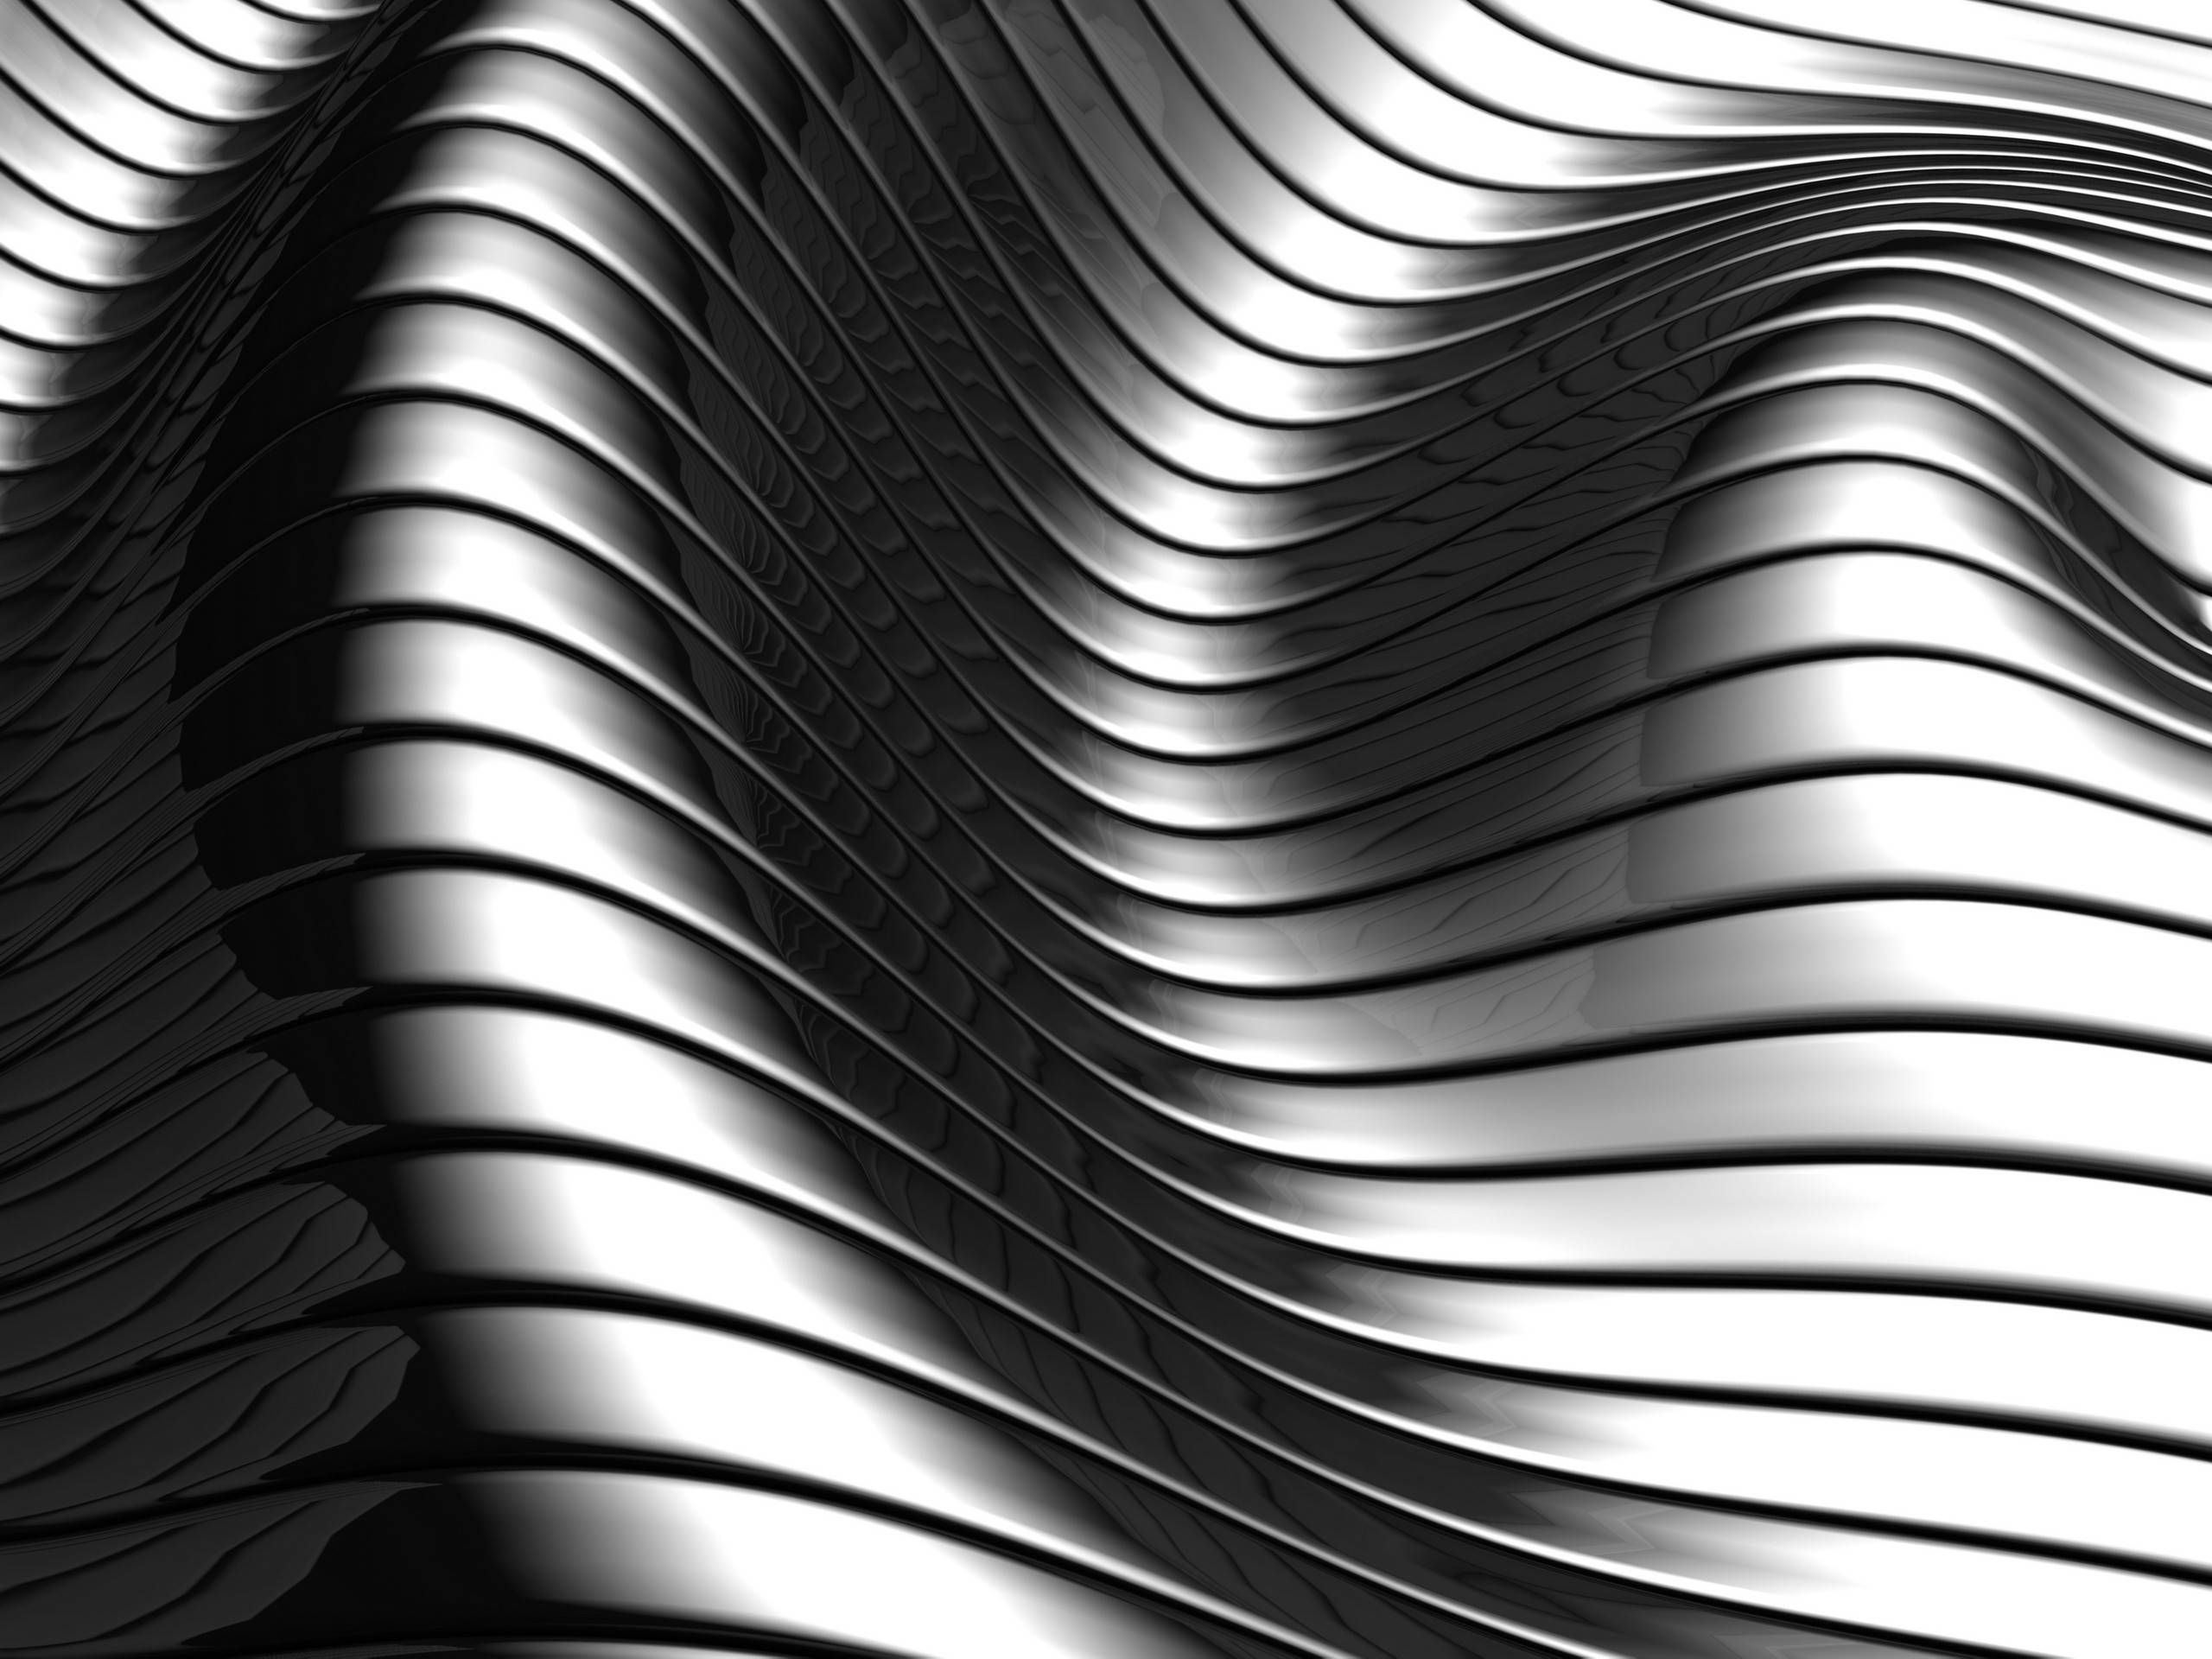 Abstract Metallic 25601920 Wallpaper 2158260 2560x1920